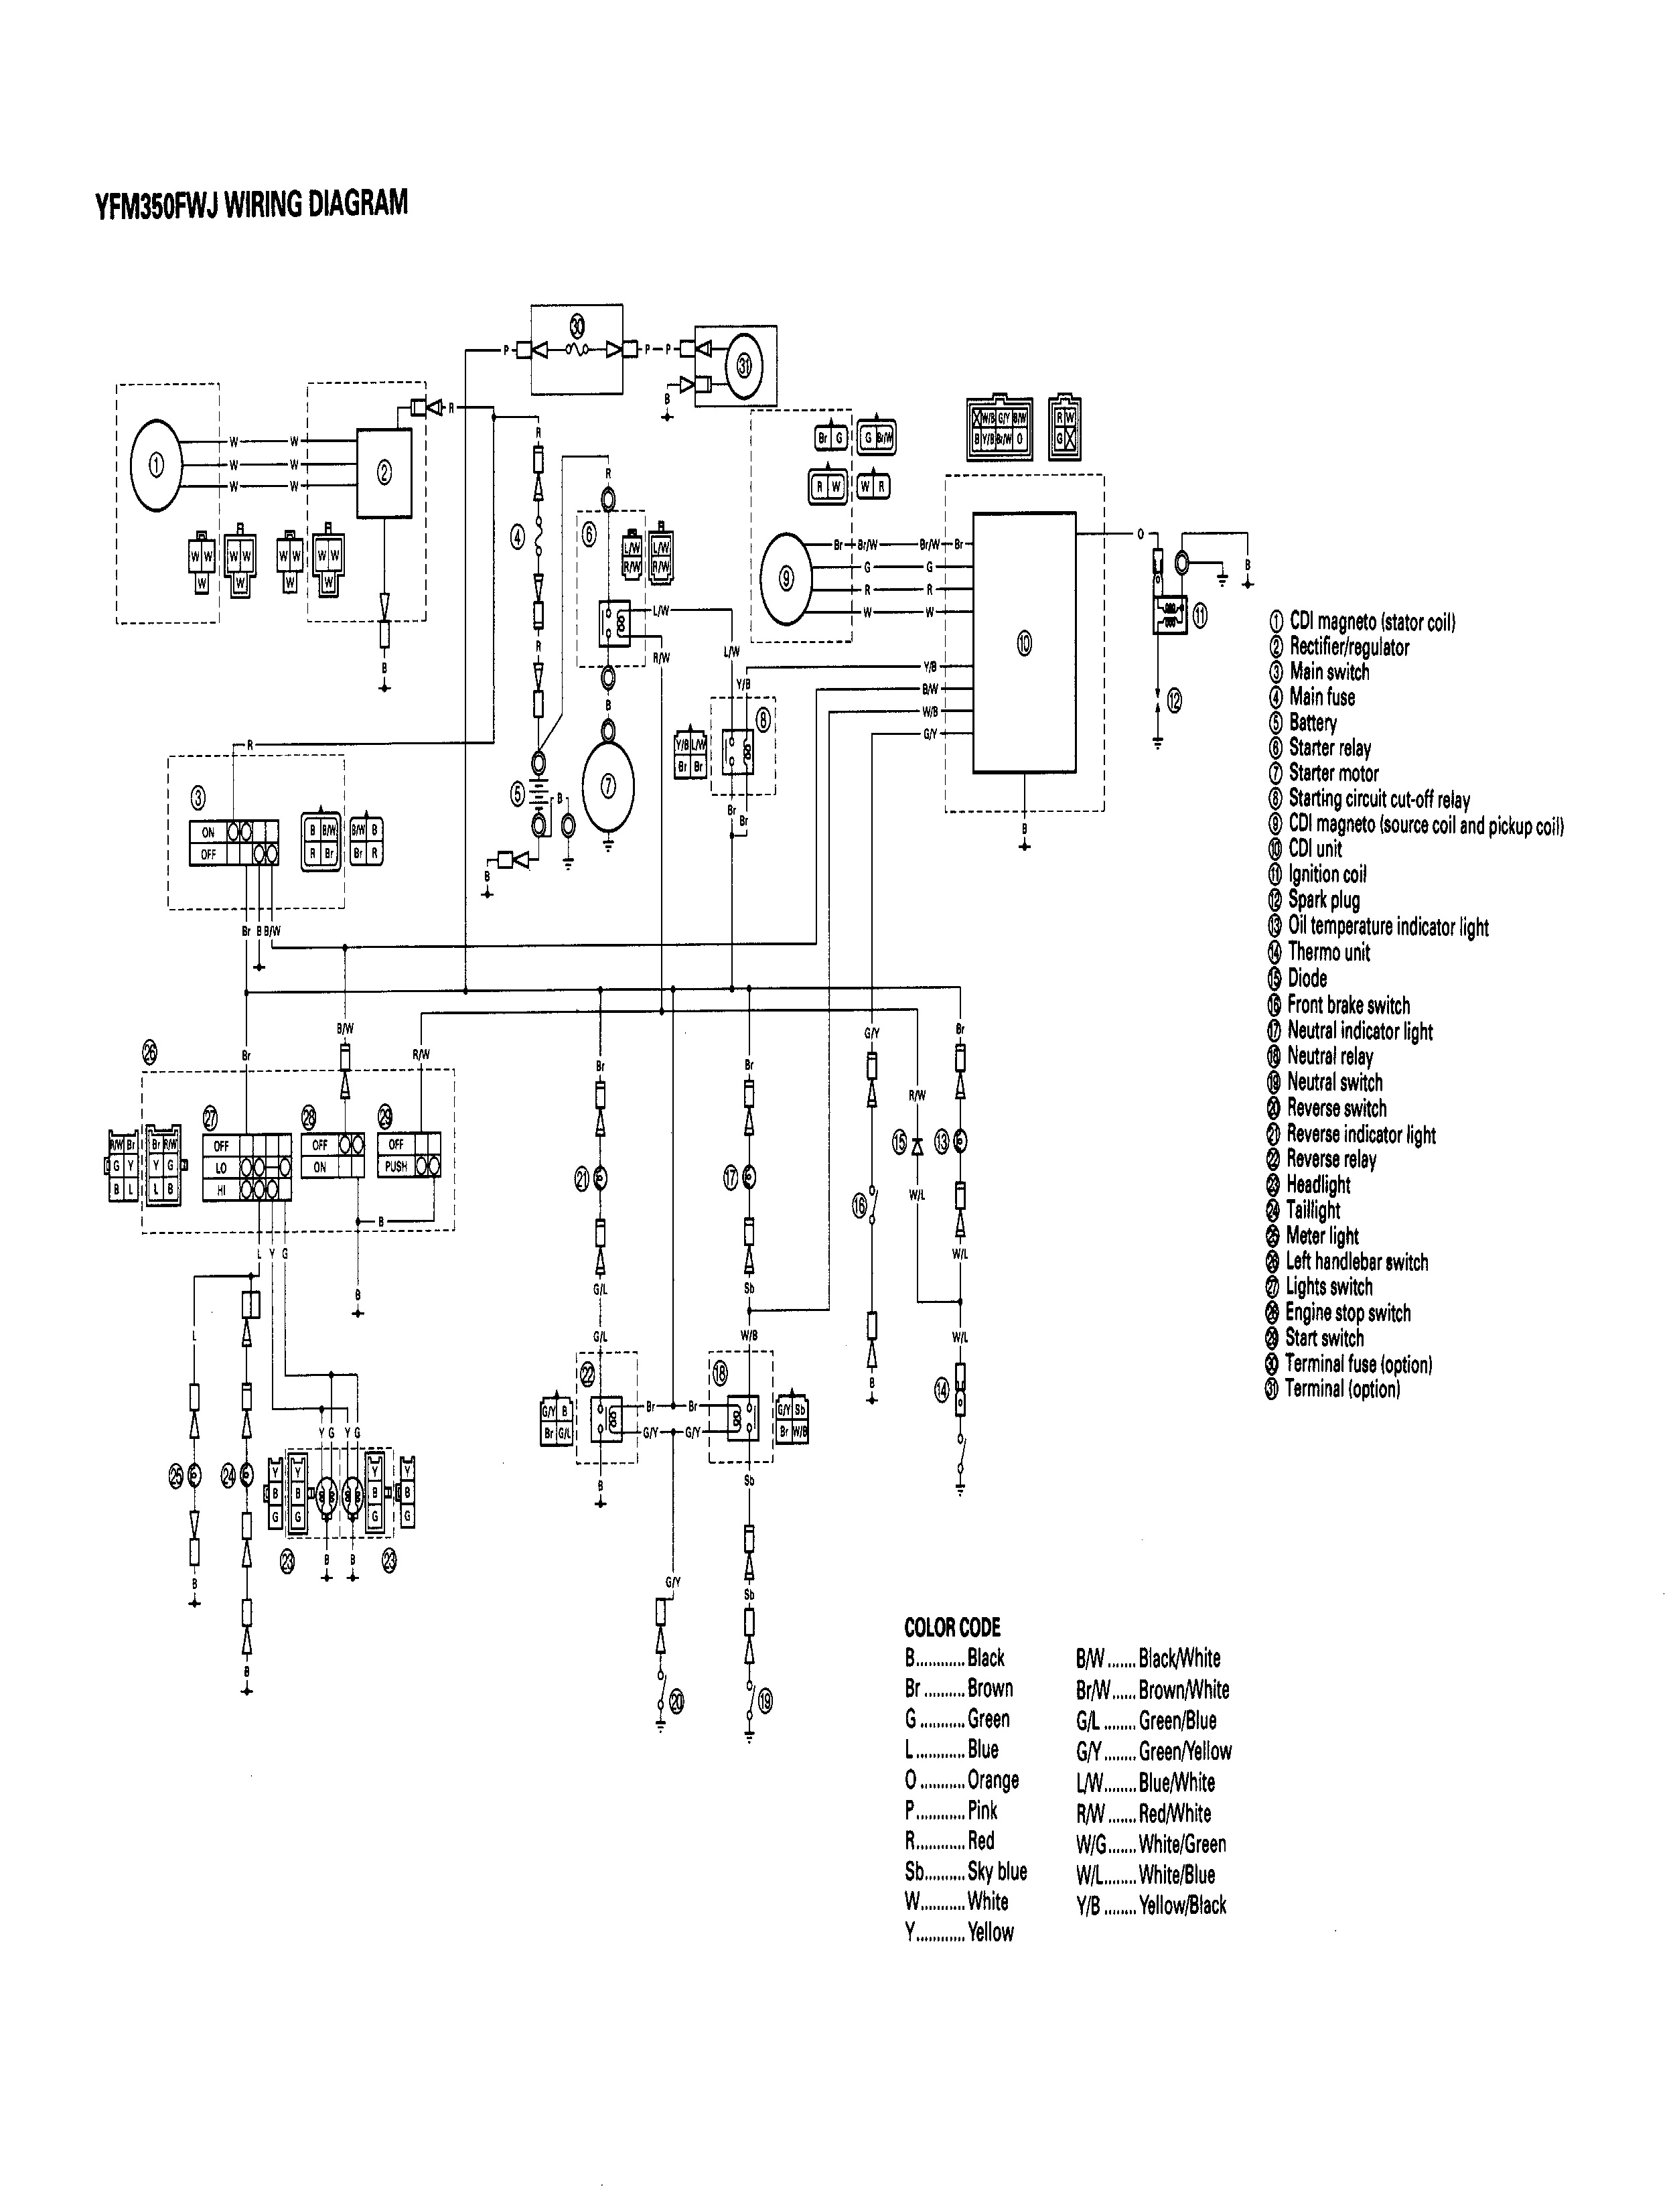 yamaha rhino wiring diagram wiring diagram for  02 grizzly 660 wiring diagram 02 auto wiring diagram schematic 2006 yamaha rhino